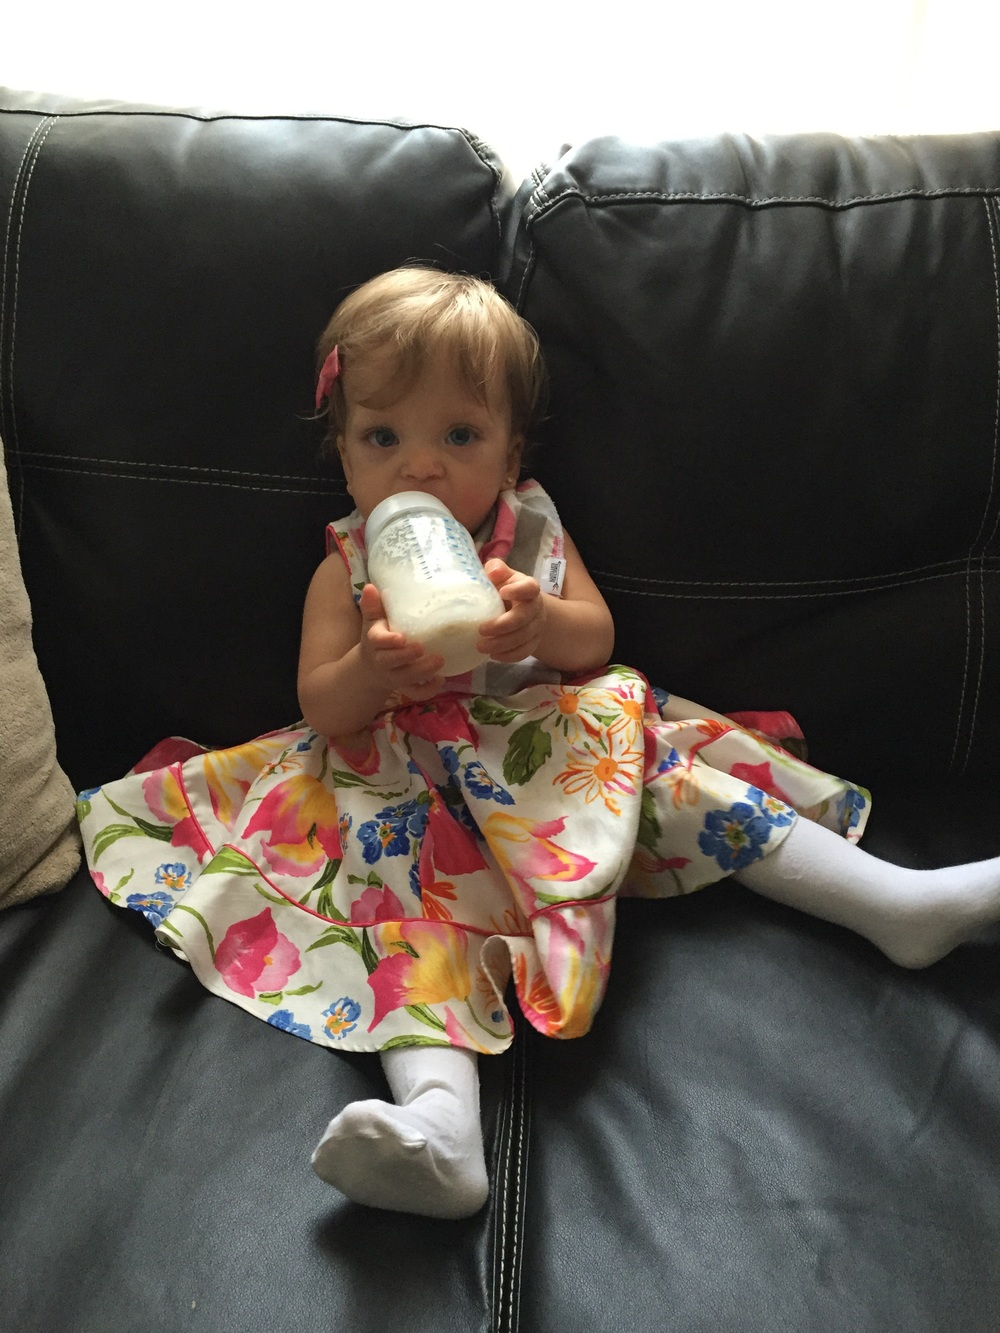 Figuring out how to take her bottle while sitting.